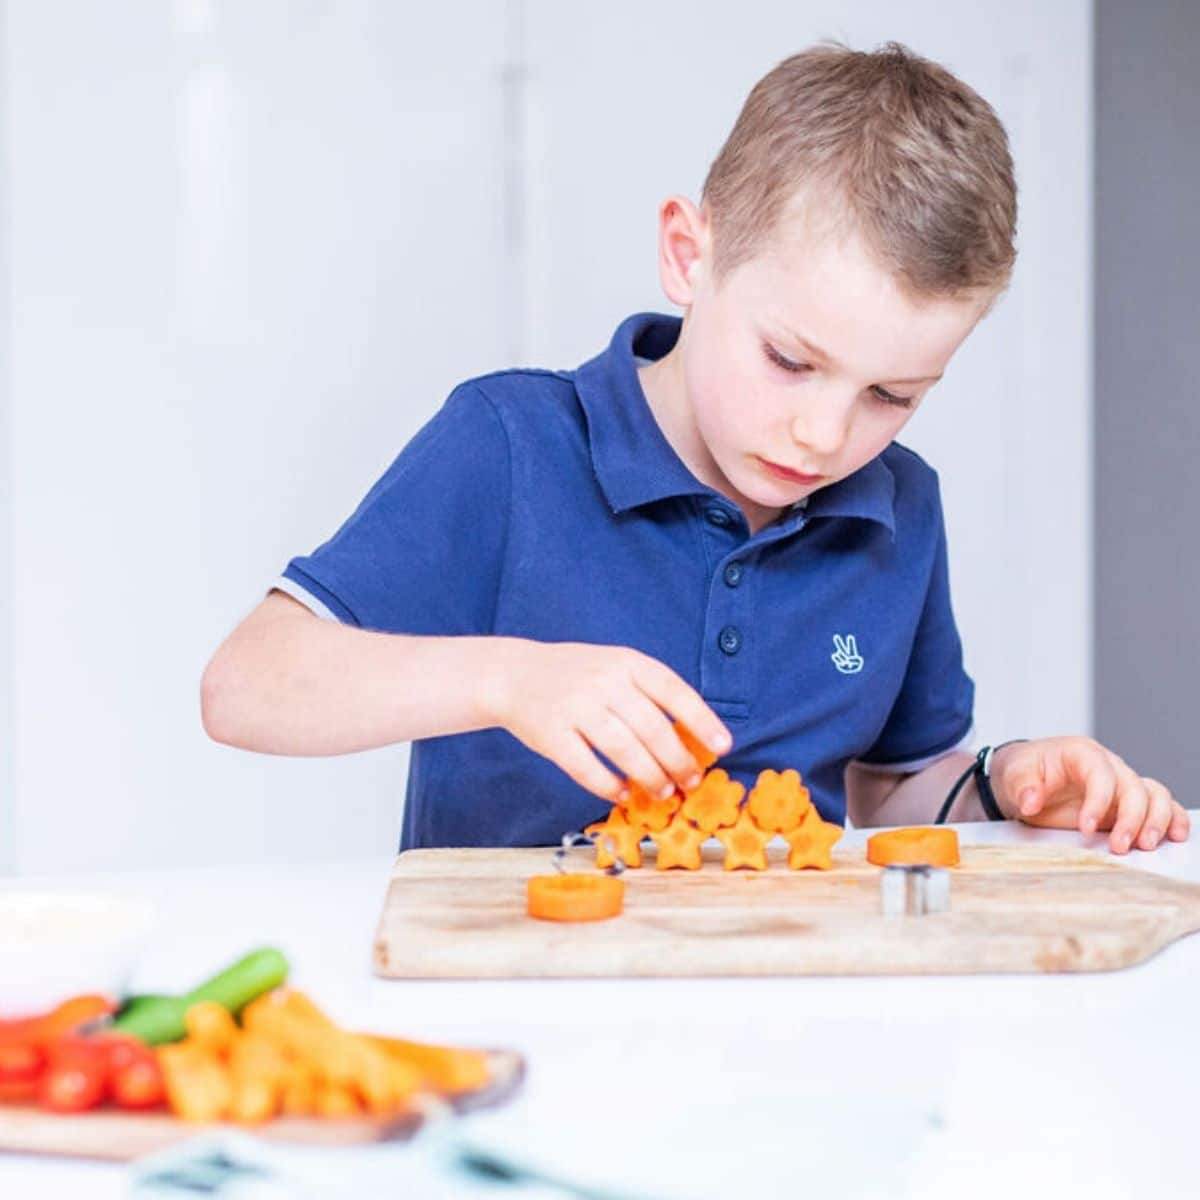 Child Stacking Carrots Cut in Different Shapes